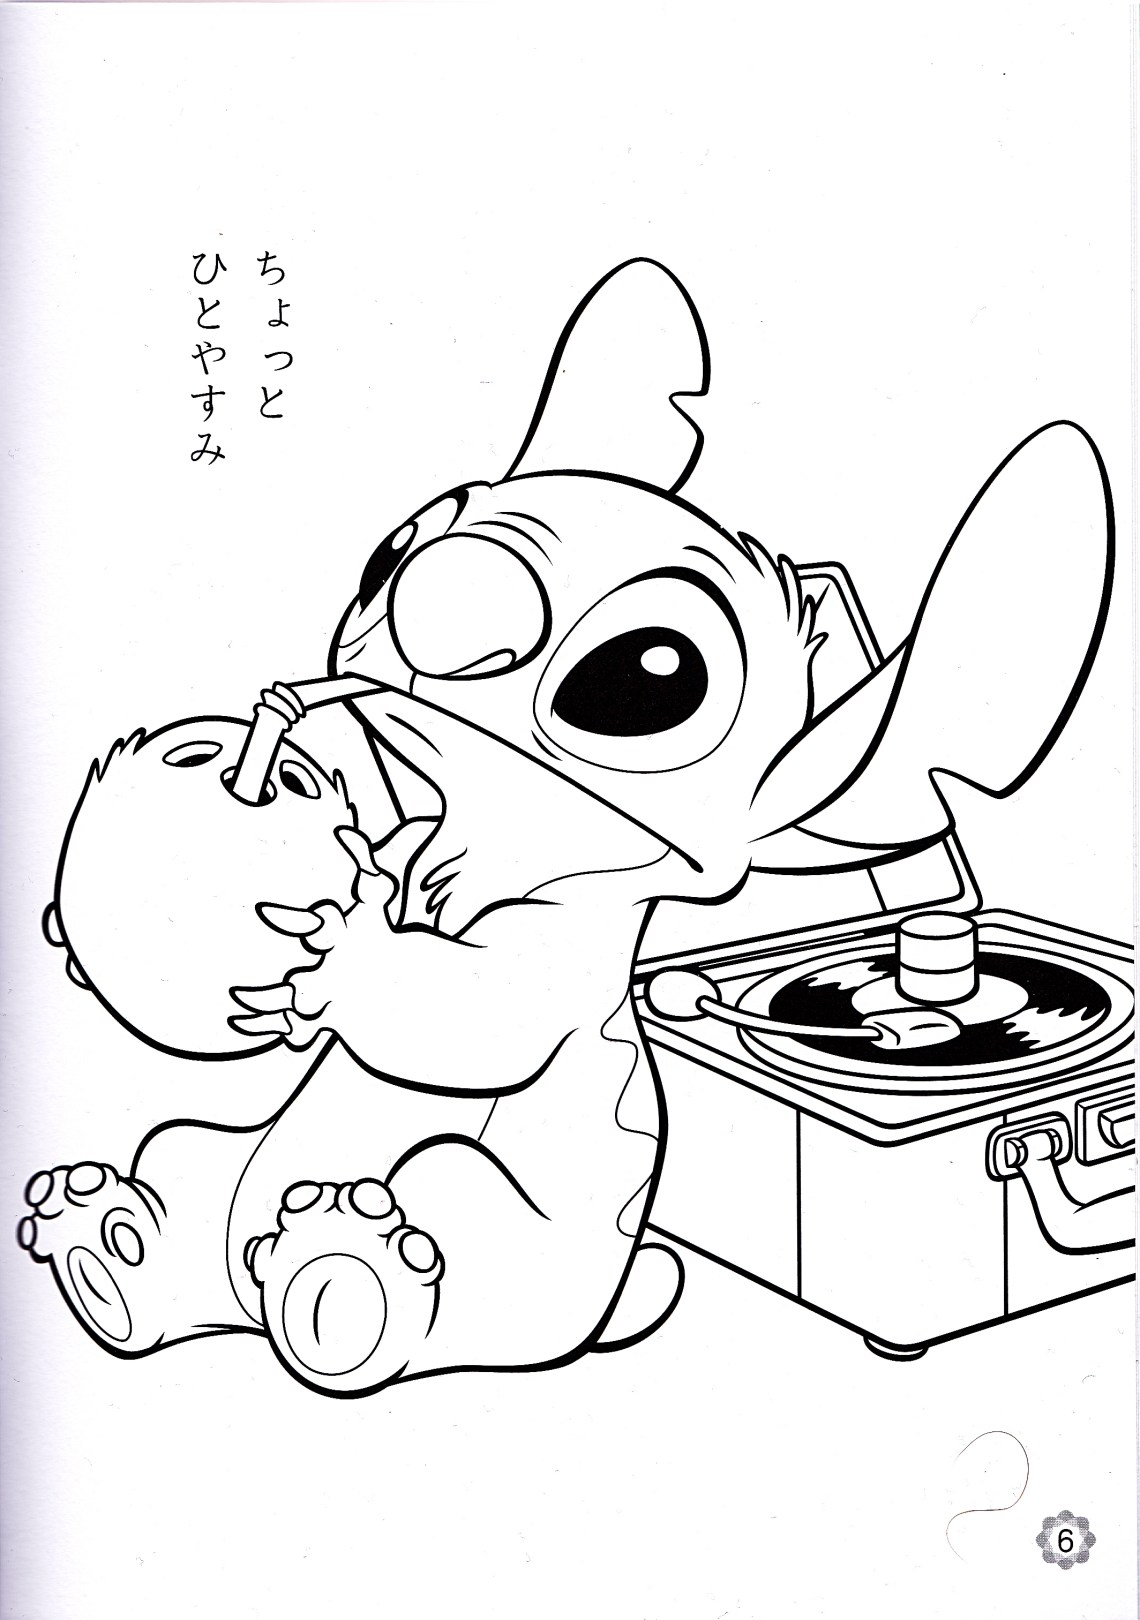 Coloring Pages For Adults Disney at GetColorings.com ...   colouring pages for adults disney